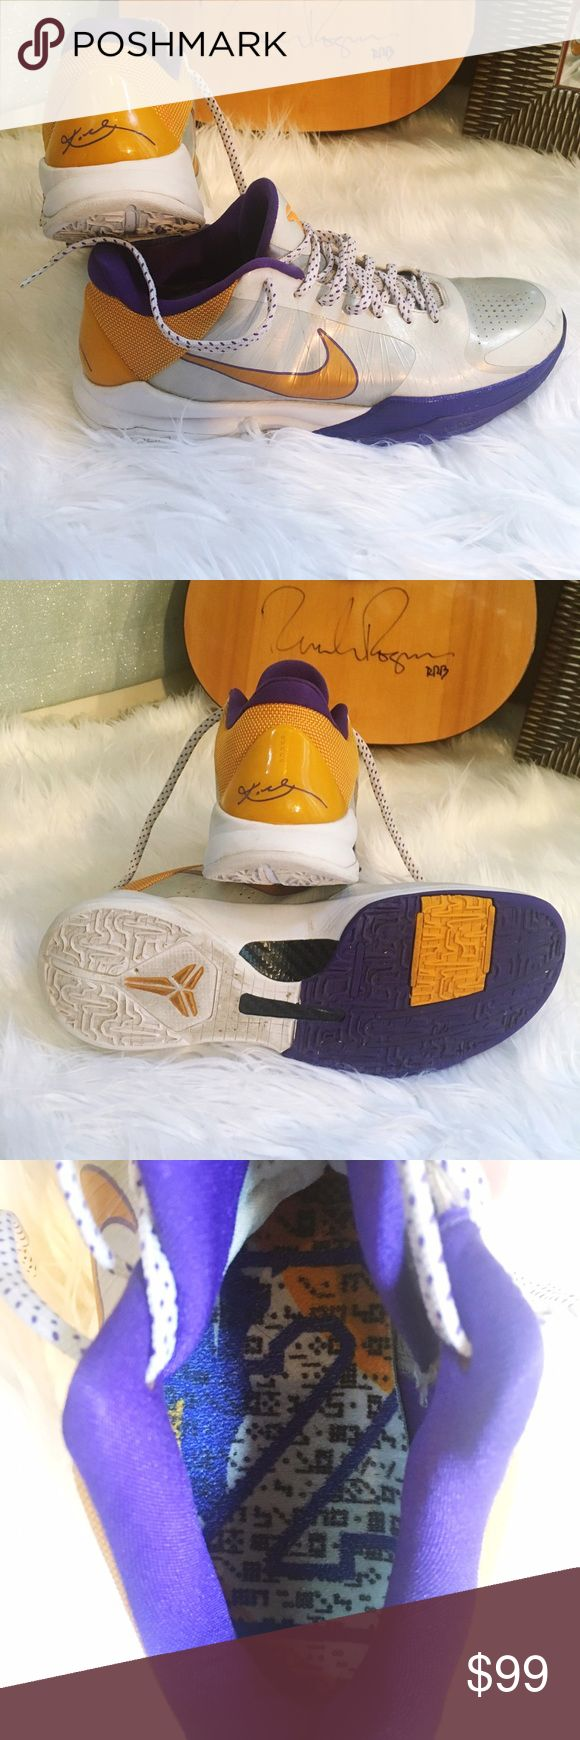 ✨ Nike Zoom Kobe Edition ✨ Size 11- Kobe's number 24 - Laker Colors- worn but not in terrible shape. ✨ Nike Shoes Athletic Shoes